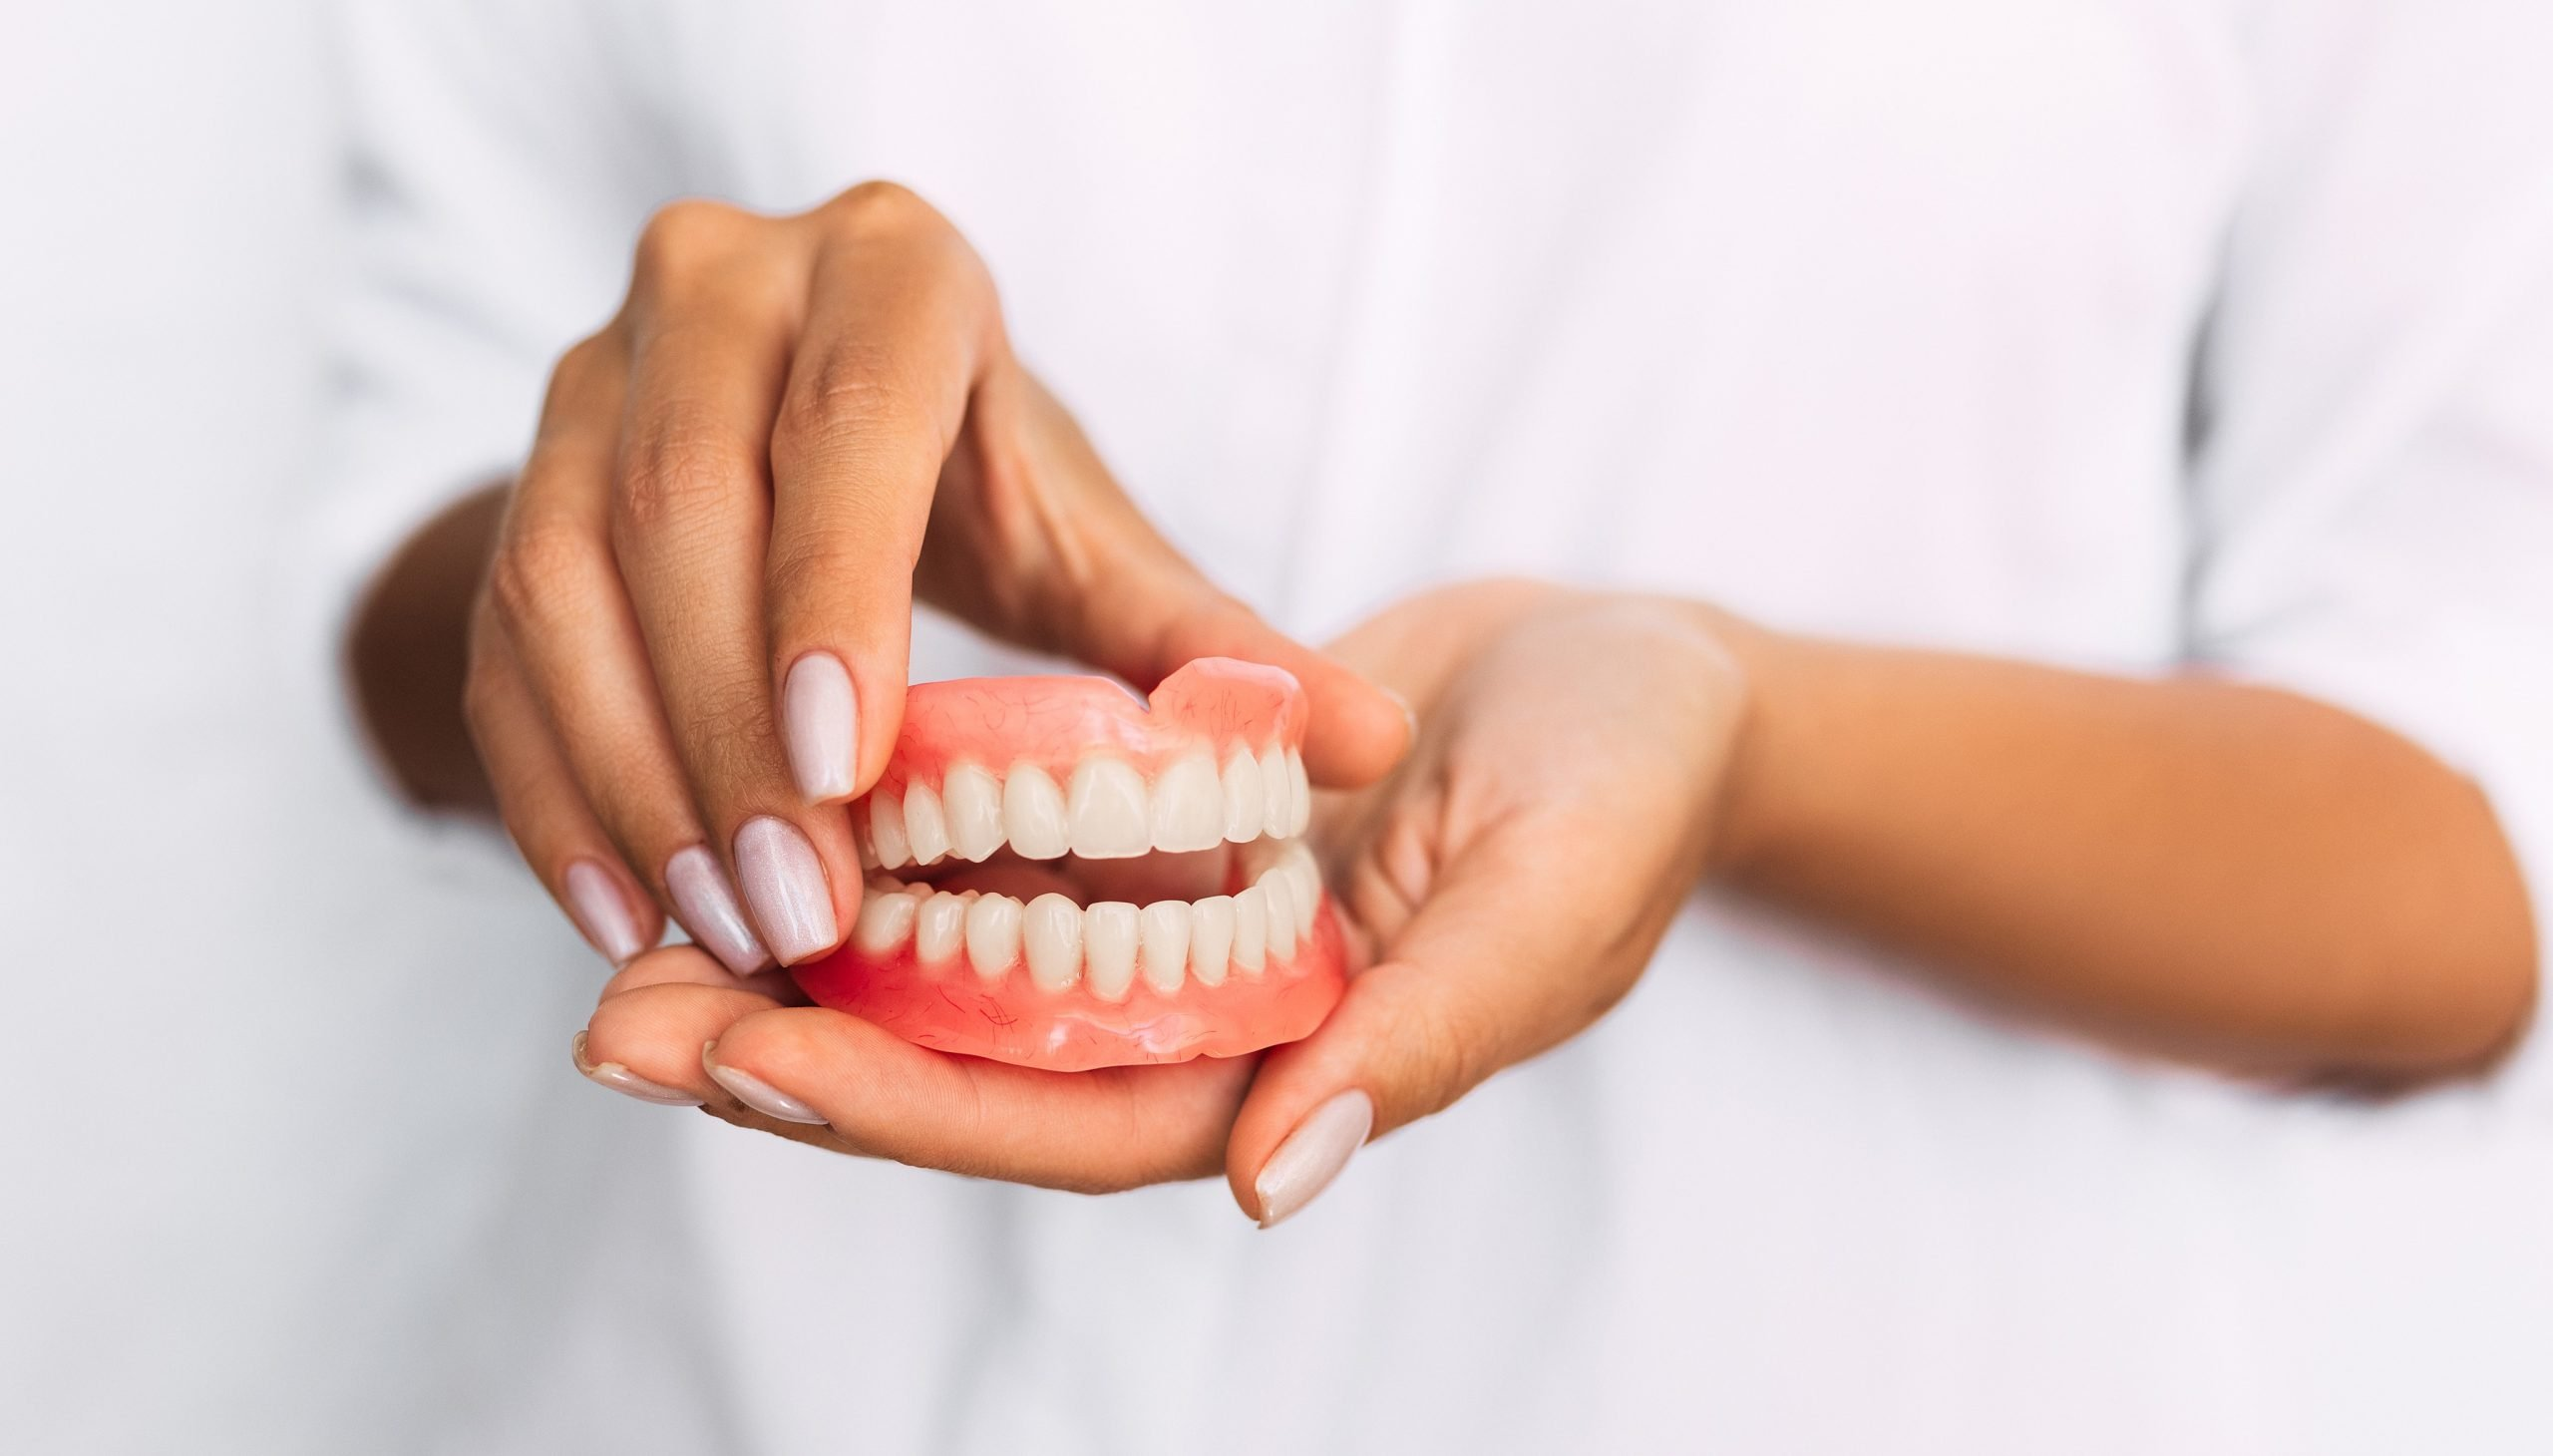 fitting dentures to improve your smile